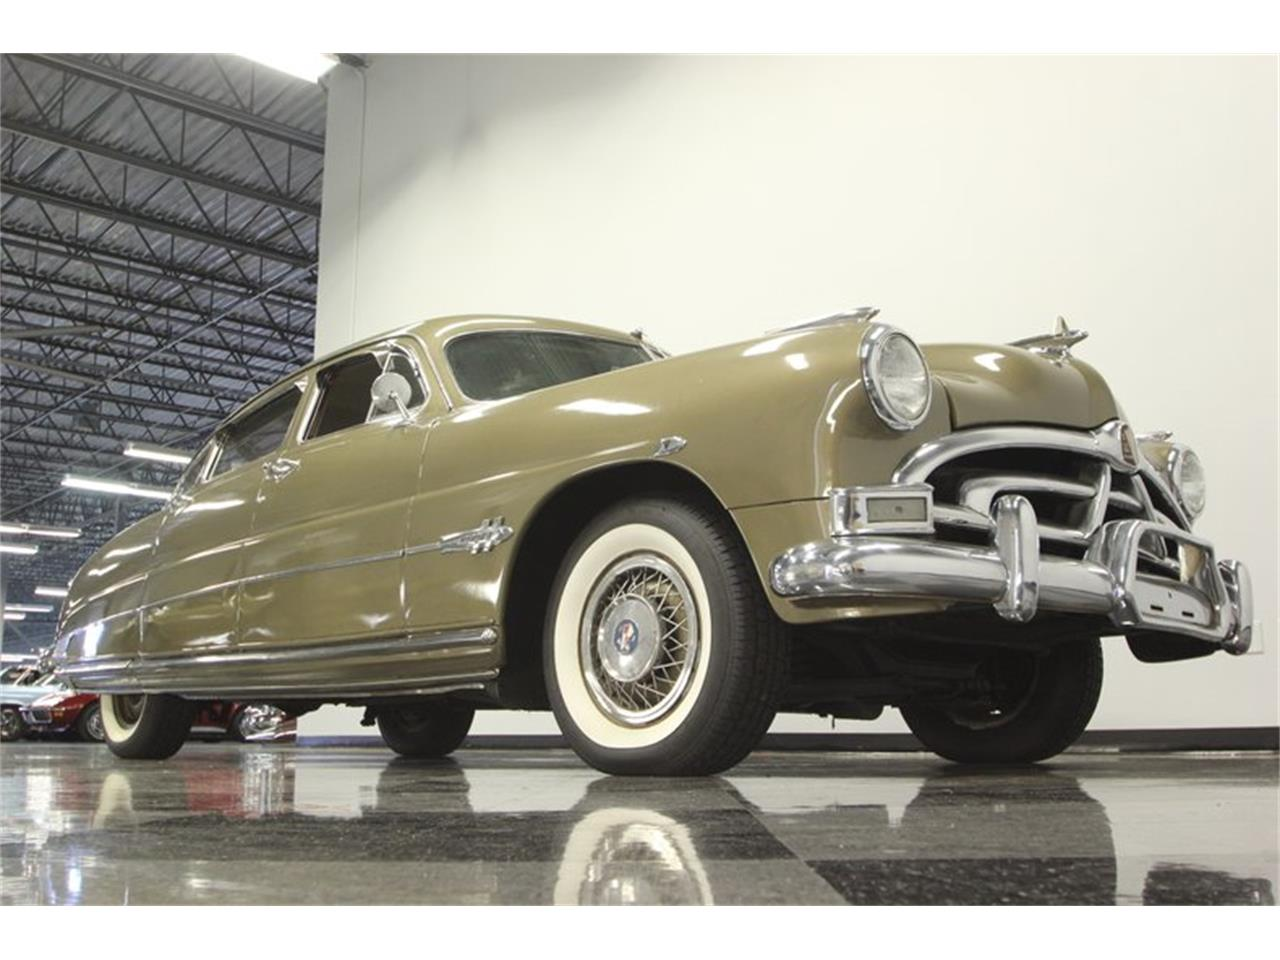 Large Picture of '51 Hornet located in Florida - $24,995.00 Offered by Streetside Classics - Tampa - PRXG